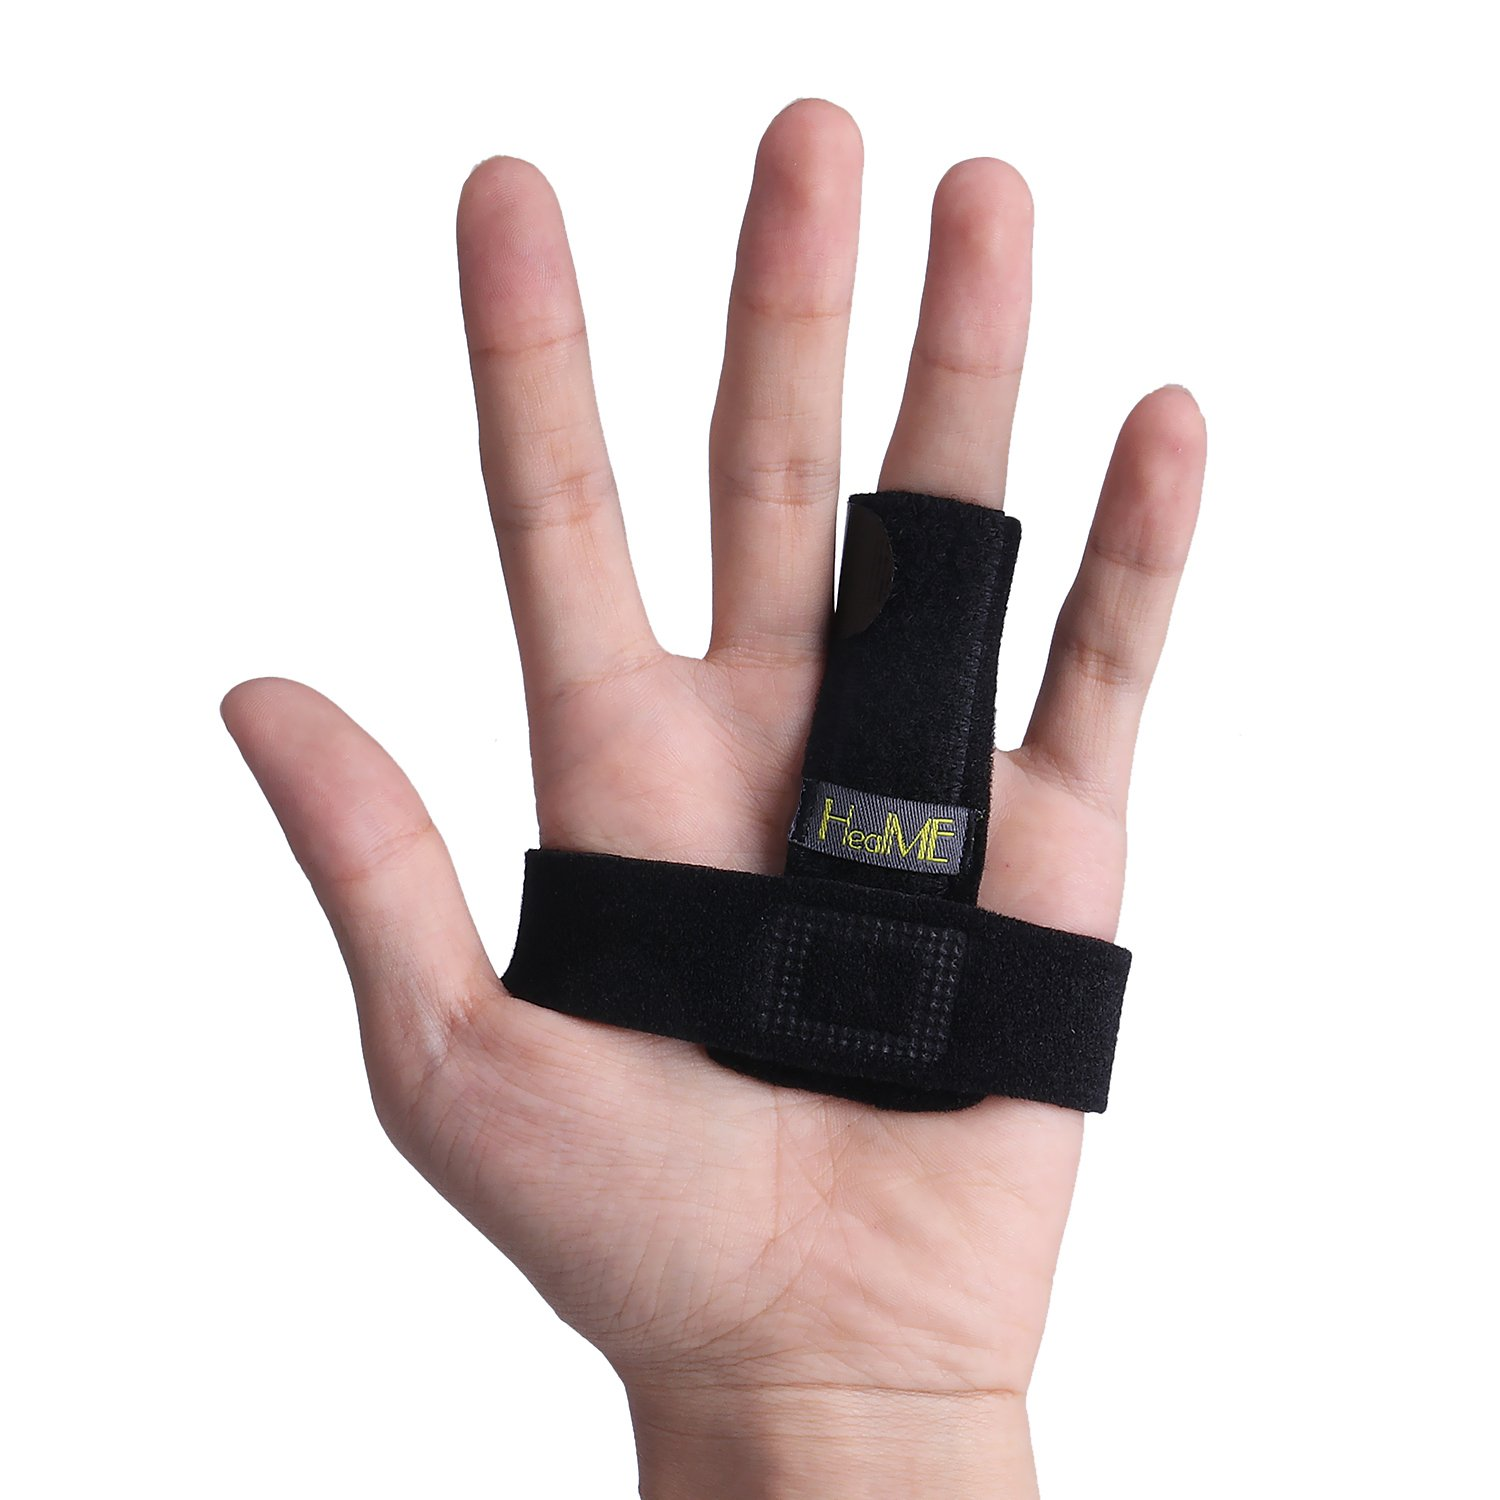 Trigger Finger Splint Brace for Finger Locking, Popping, Bending, Stiffness & Stenosing Tenosynovitis Hands - Adjustable Full Finger Splints, Middle Finger Support - Tendon Release & Pain Relief by HealME